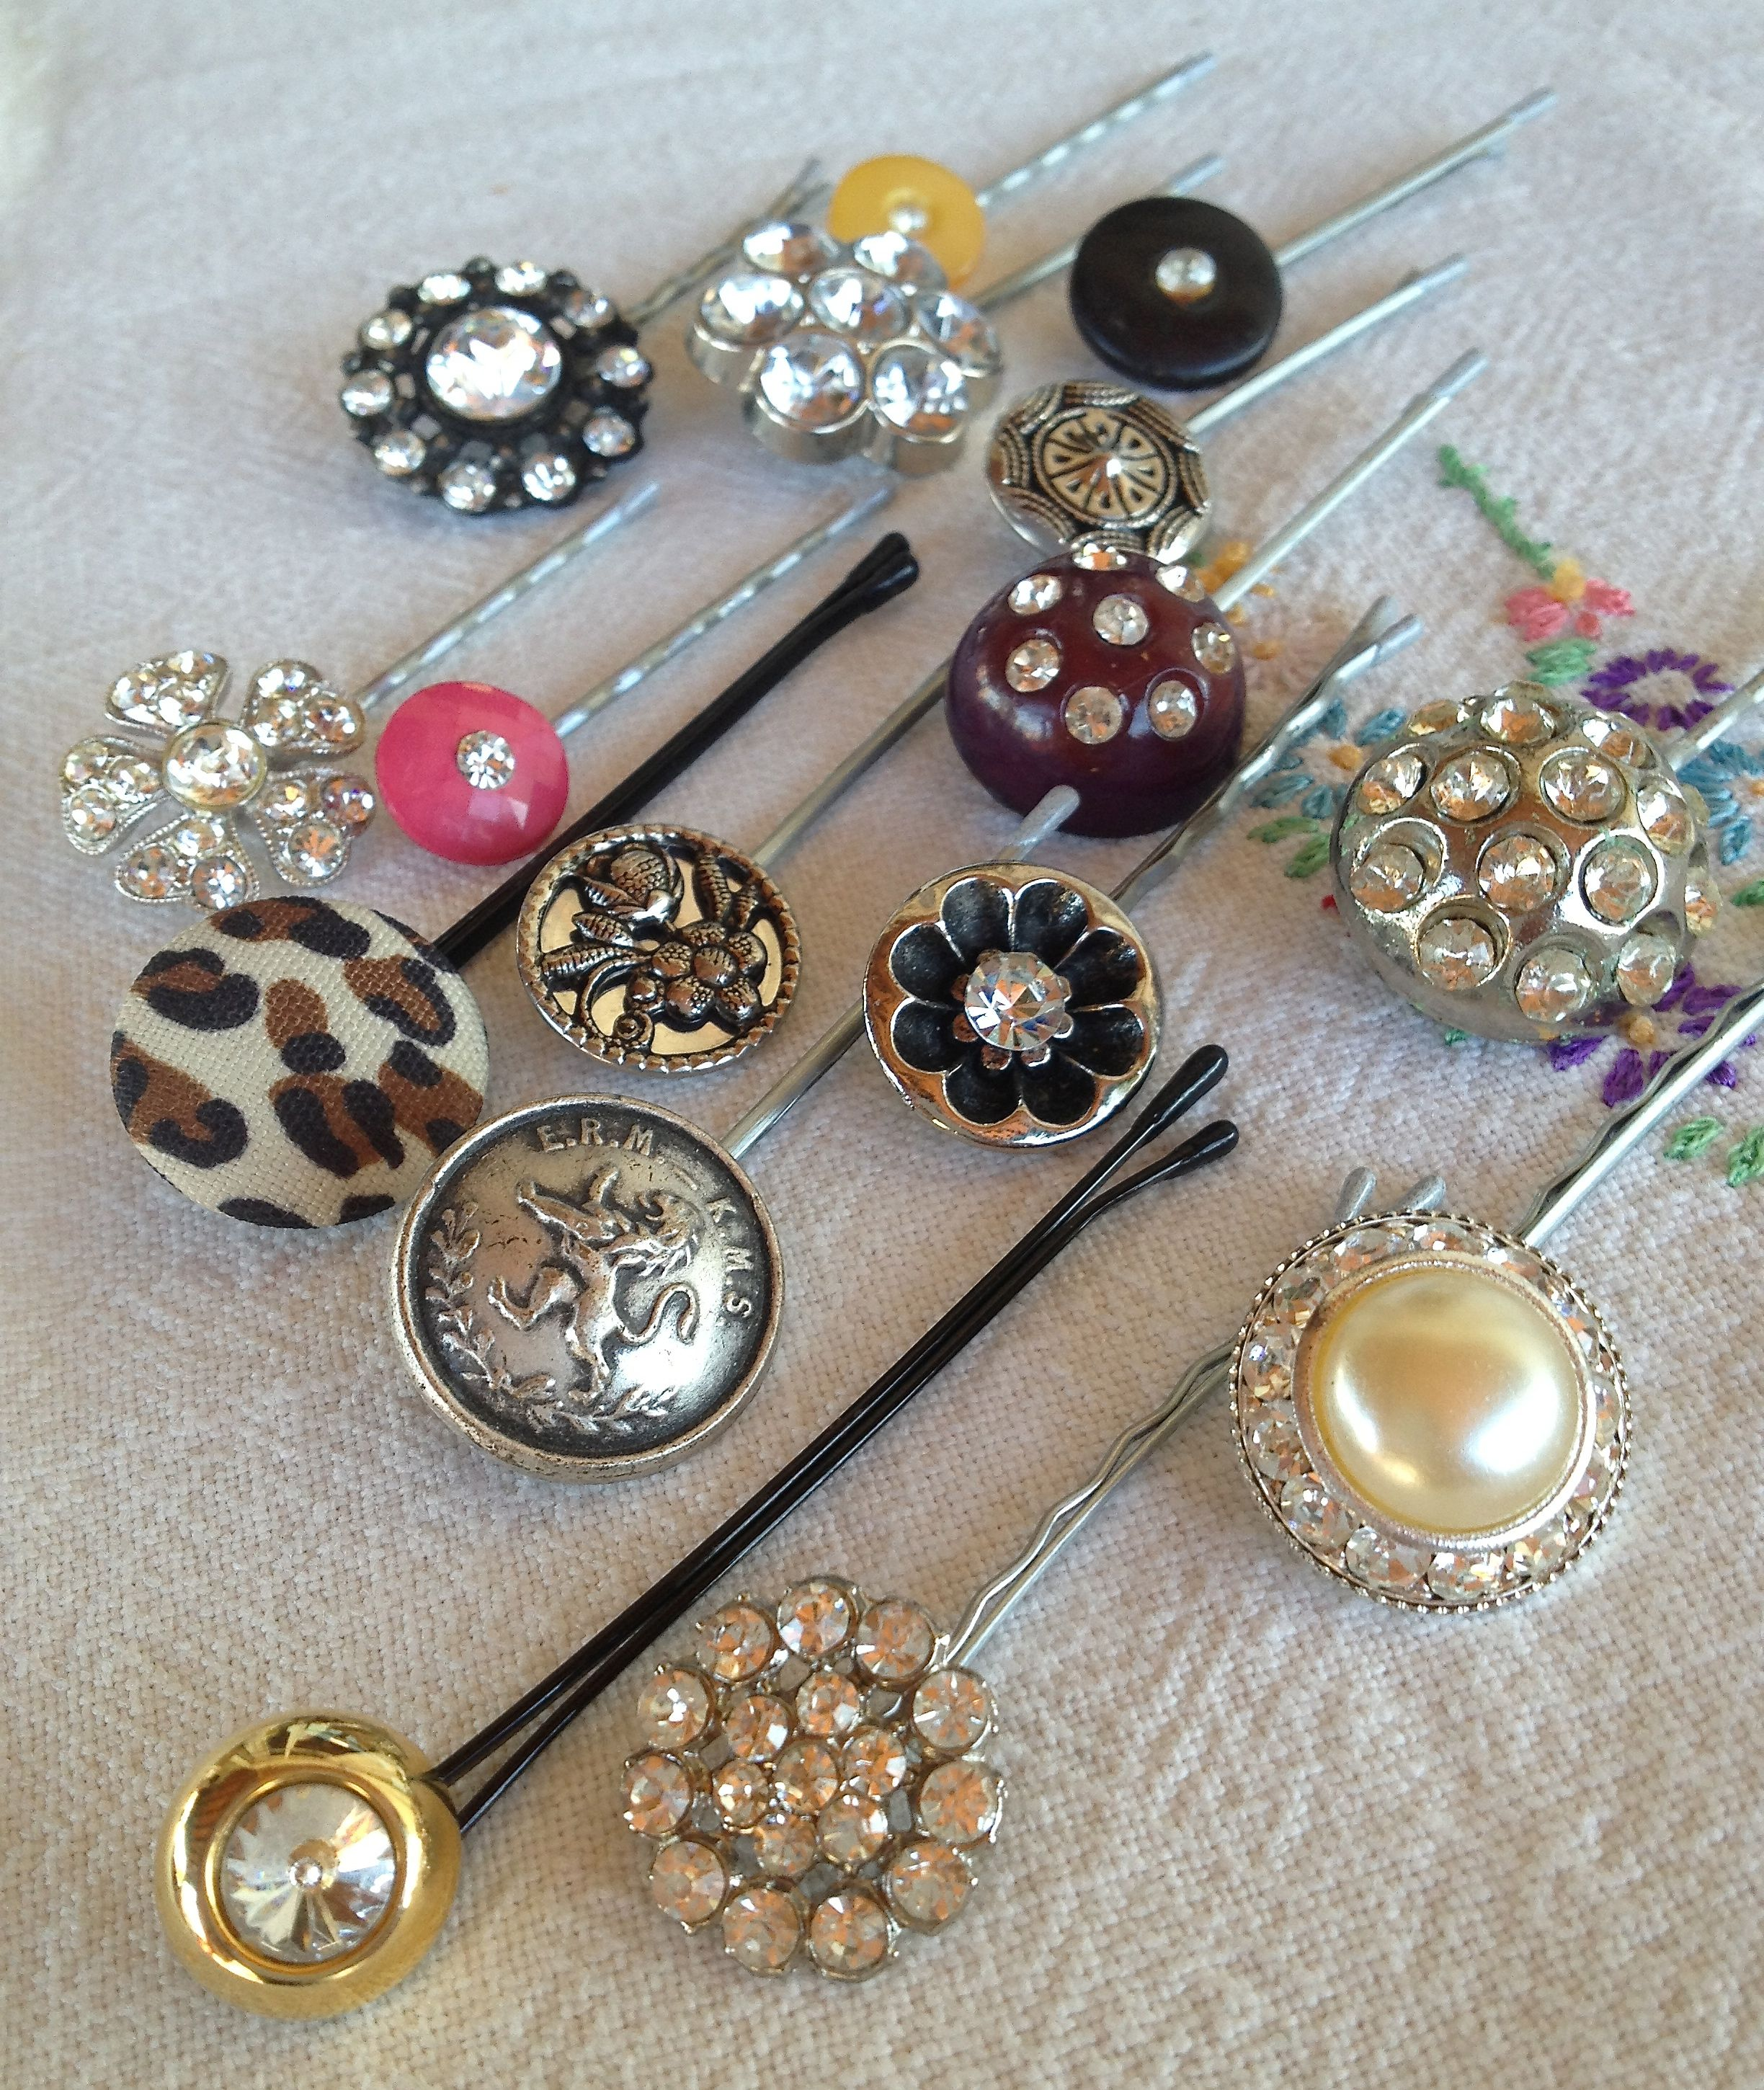 Diy projects old jewelry crafts costume jewelry crafts